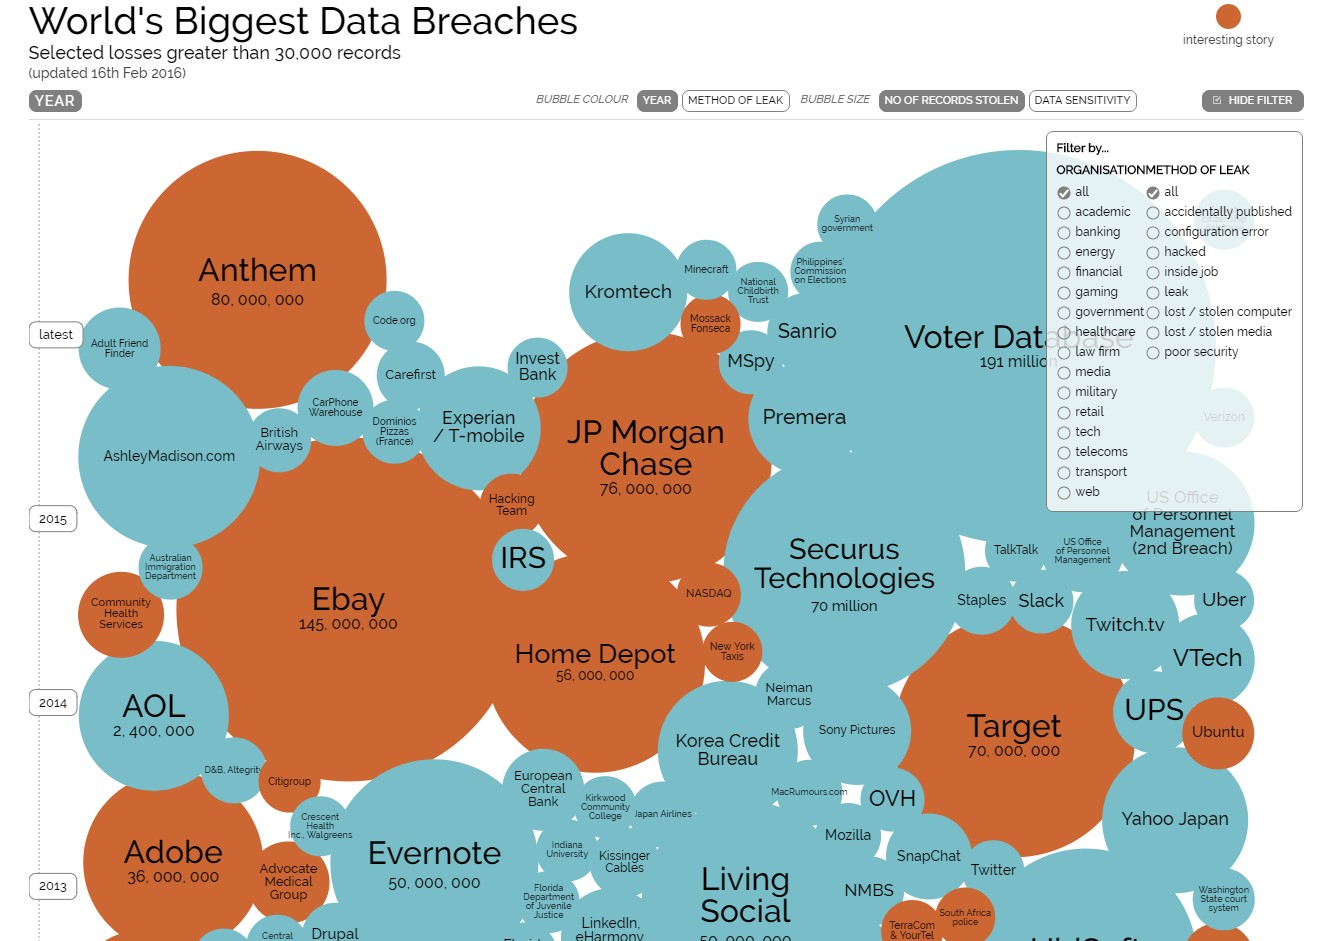 World's biggest data breaches (Feb 2016)